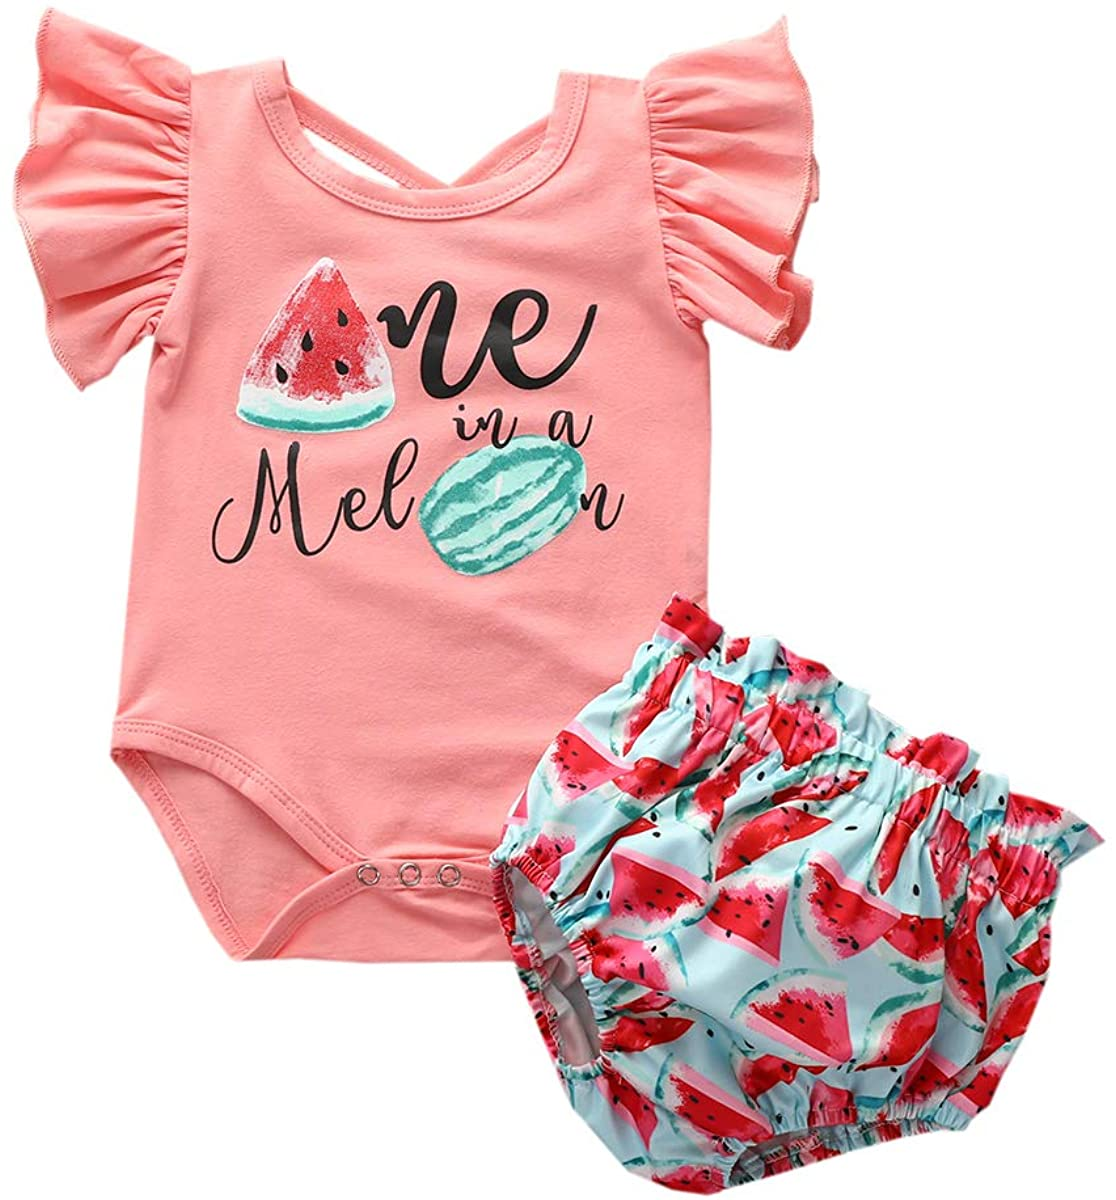 2Pcs Newborn Infant Baby Girl Shorts Set Ruffle Sleeves Romper+Watermelon Short Clothes Set Outfits Summer